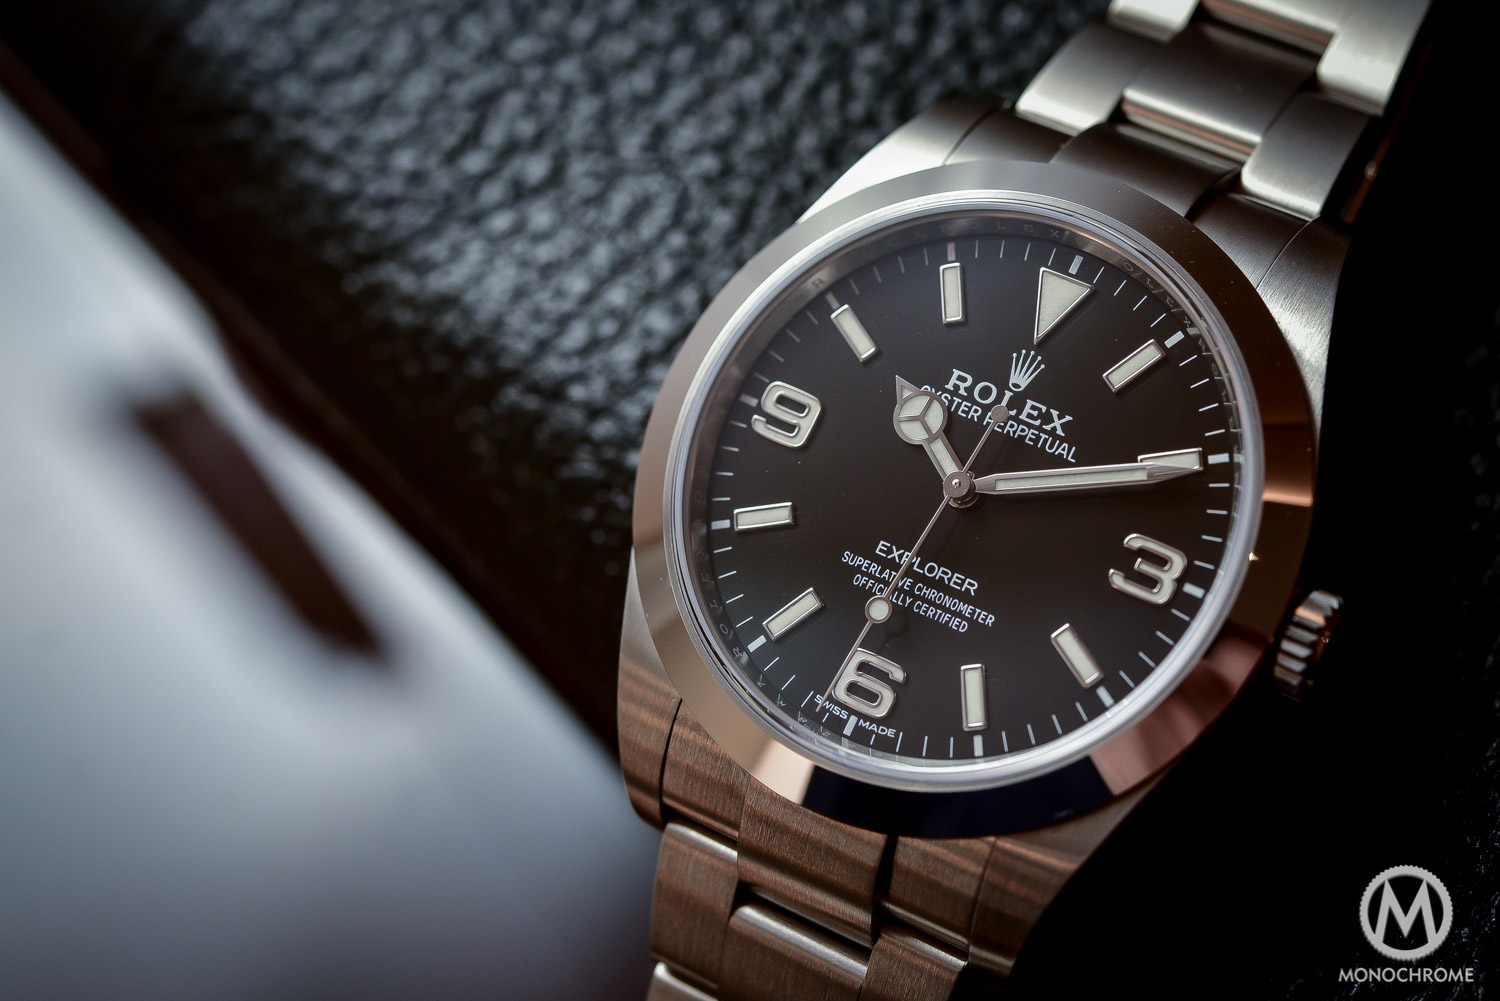 Rolex-Explorer-214270-Baselworld-2016-Long-hands-6